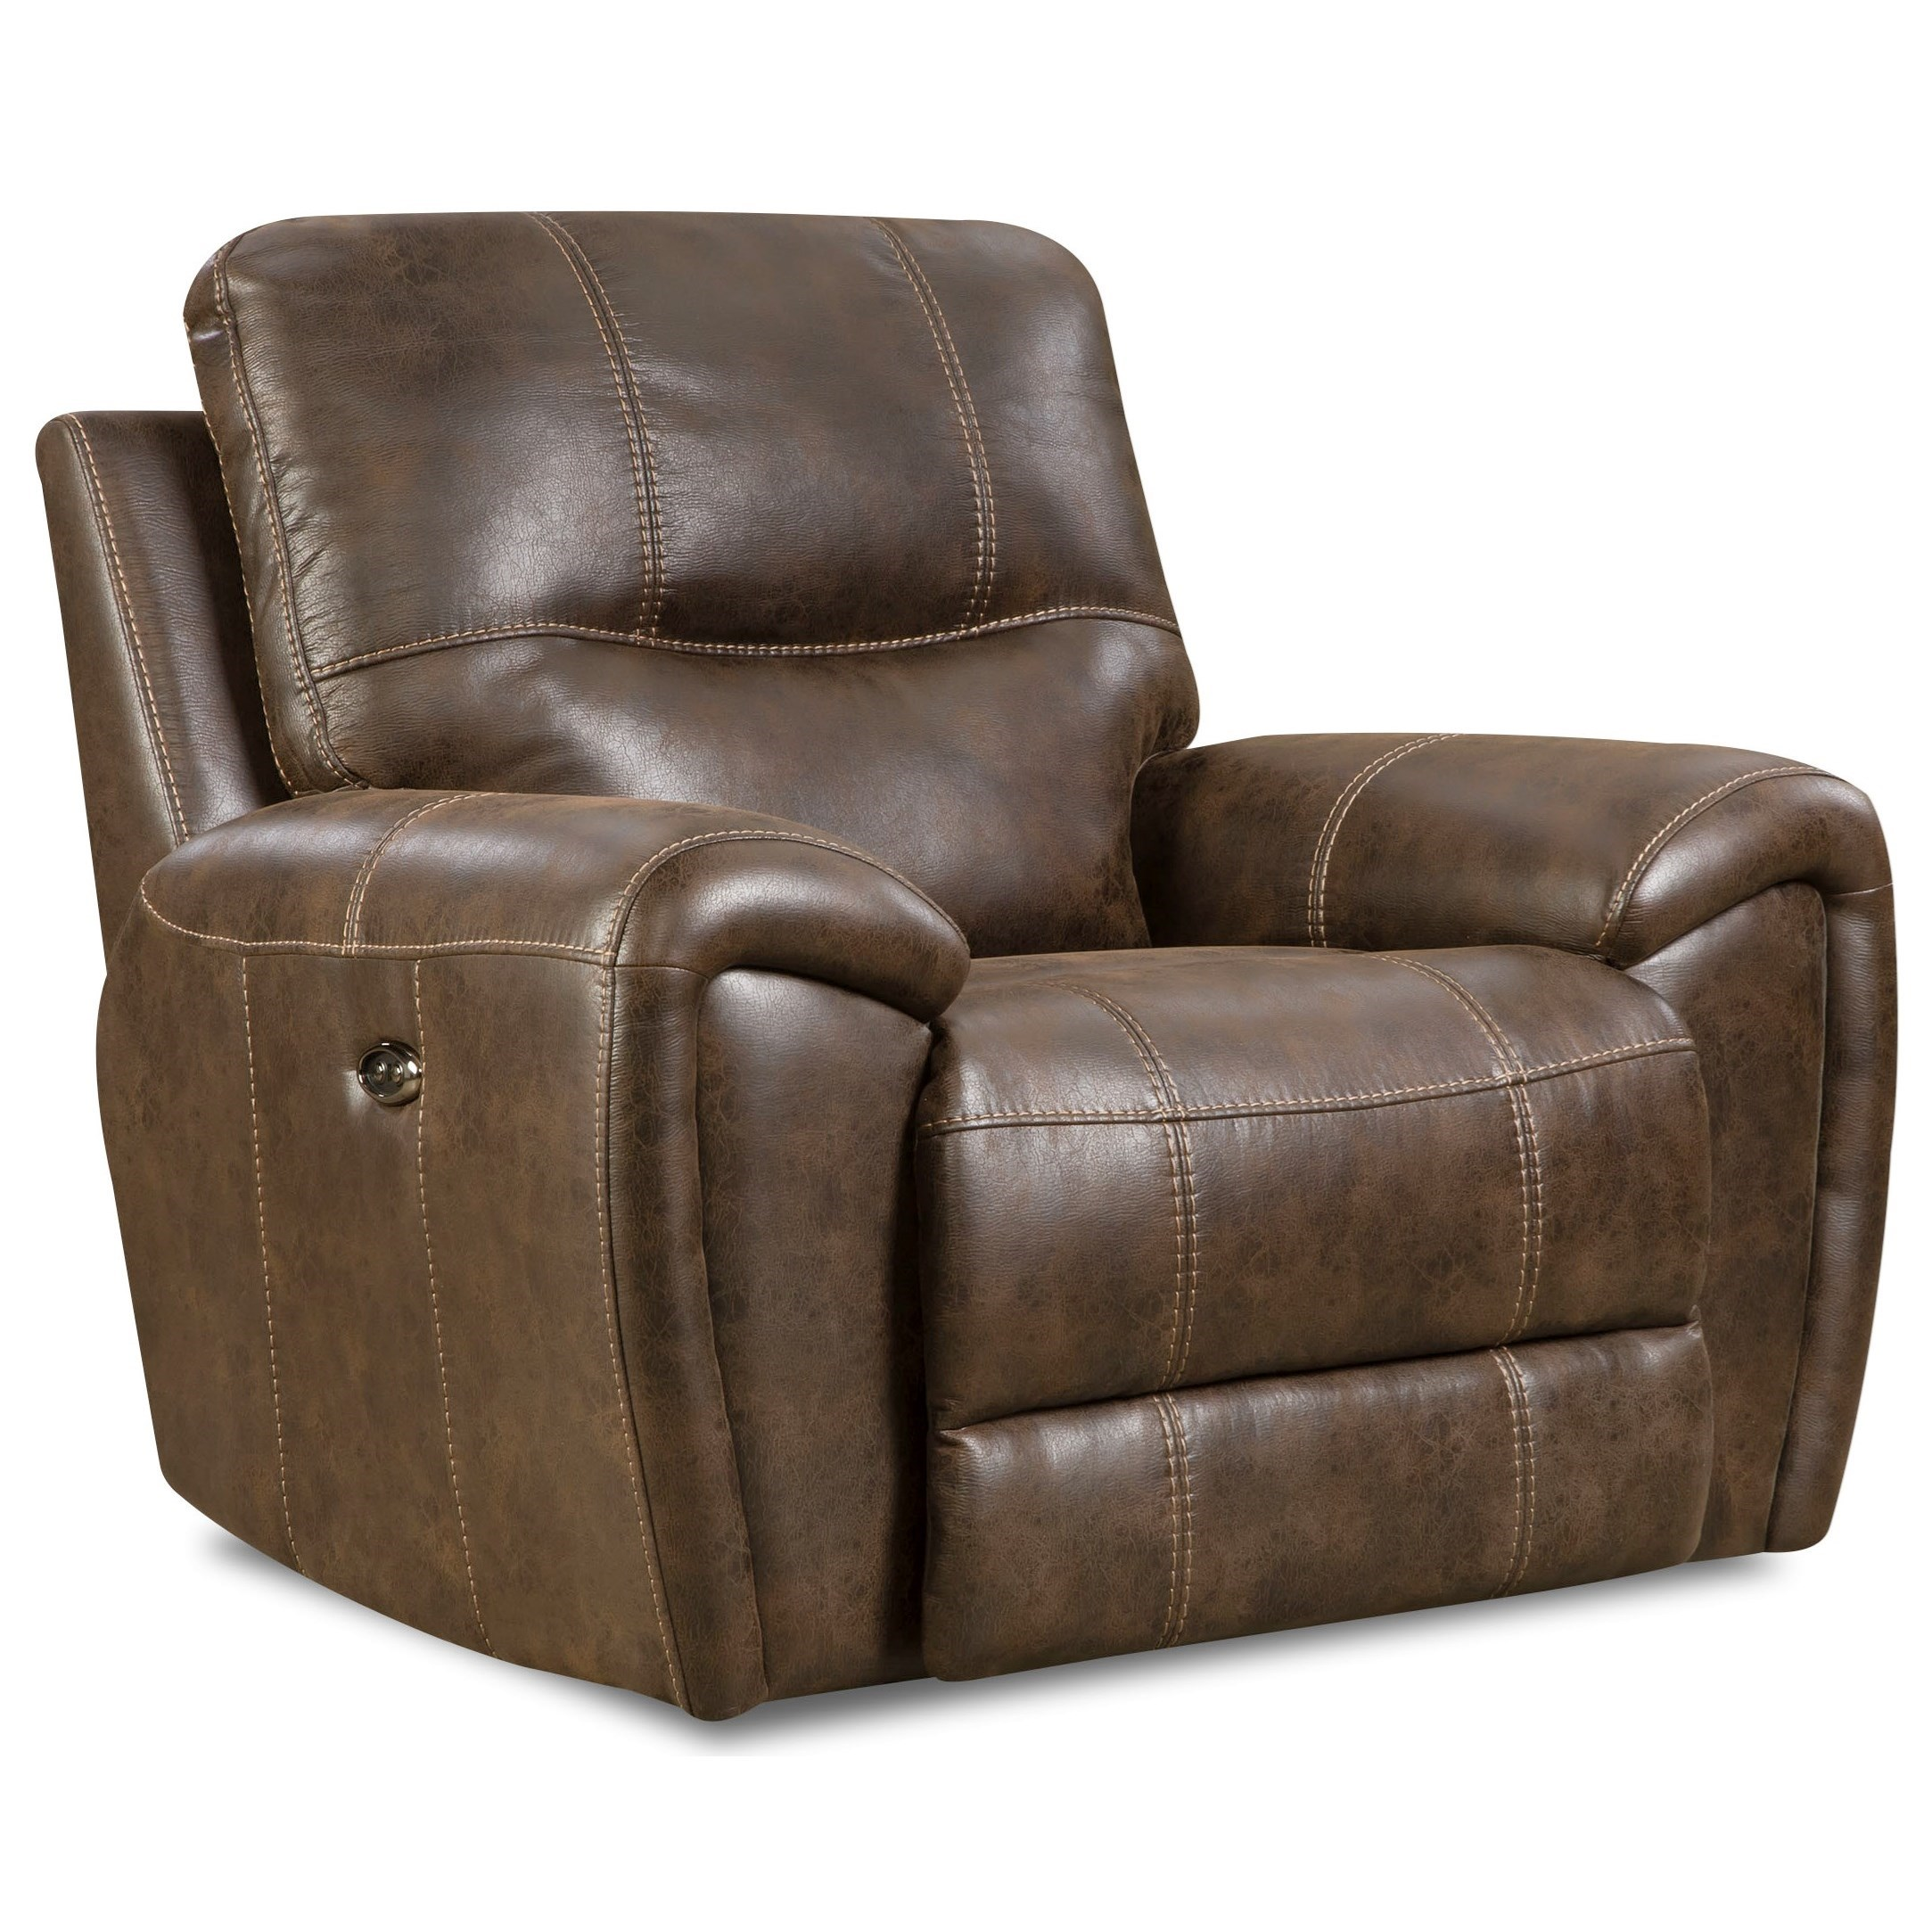 VFM Signature-R 91001 Glider Recliner - Item Number: FGC91001-19G RC